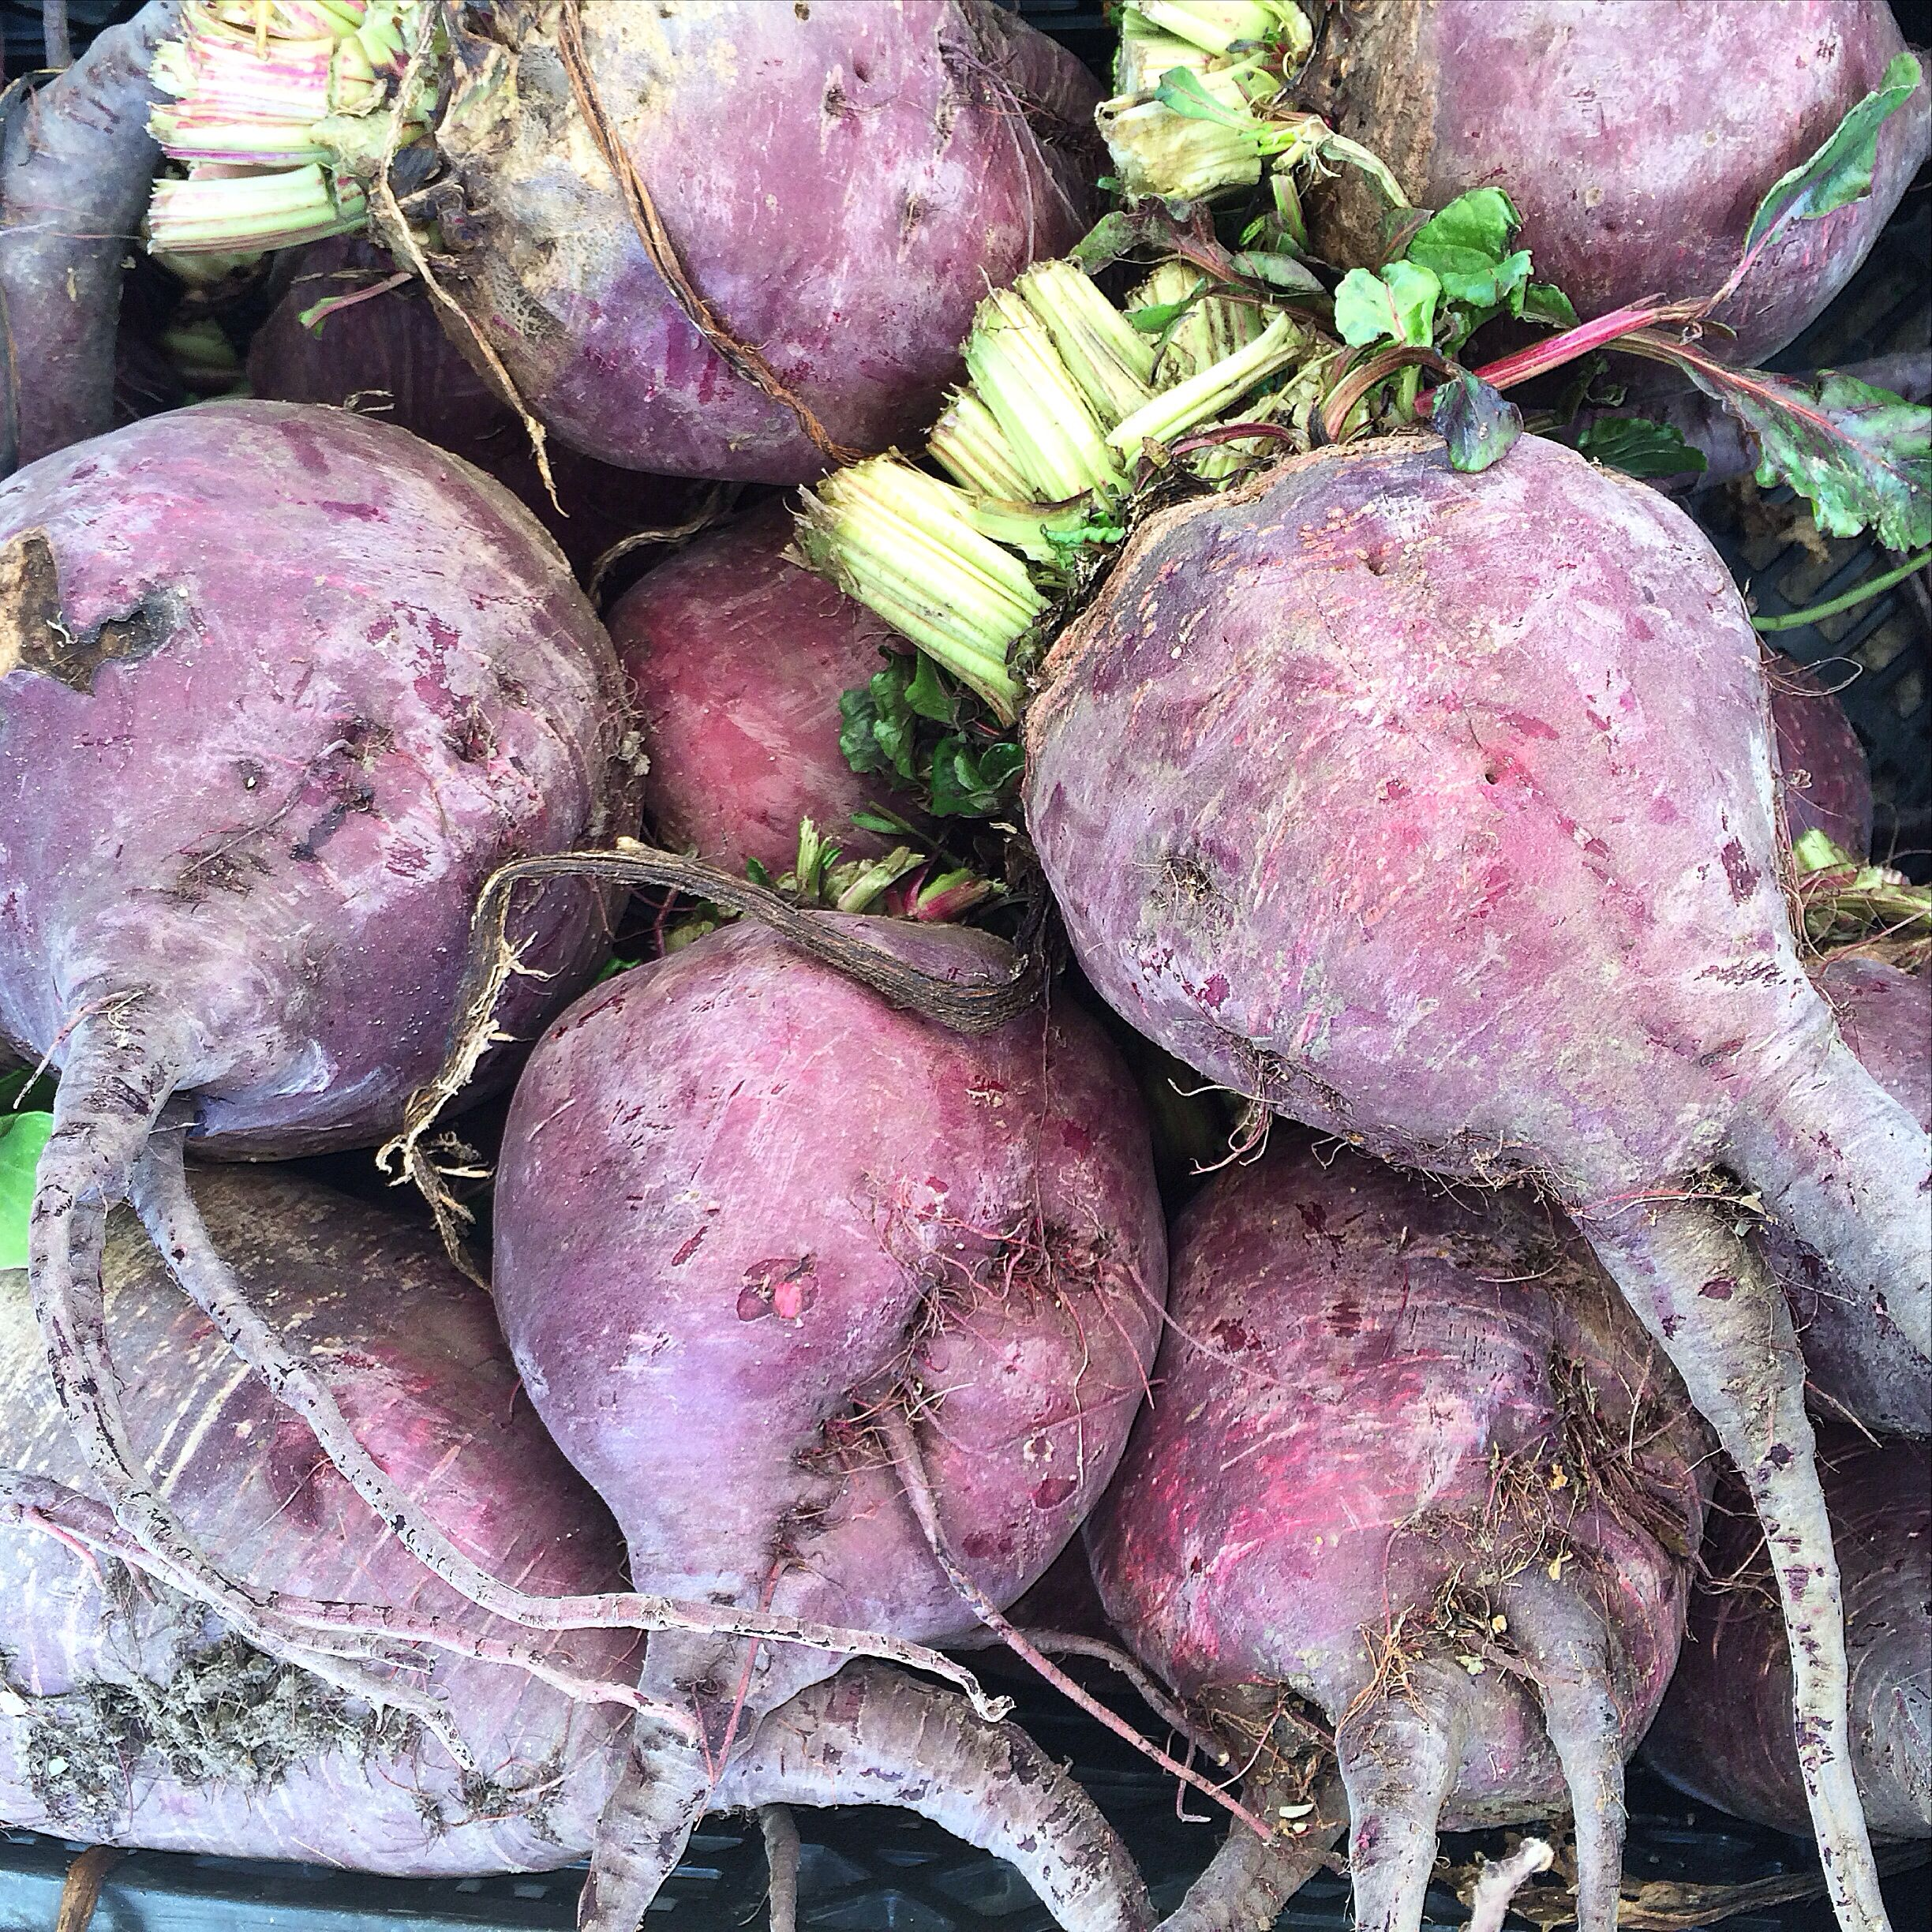 Lutz beets from Tierra Vegetable Farm at the CUESA Farmers Market in San Francisco.